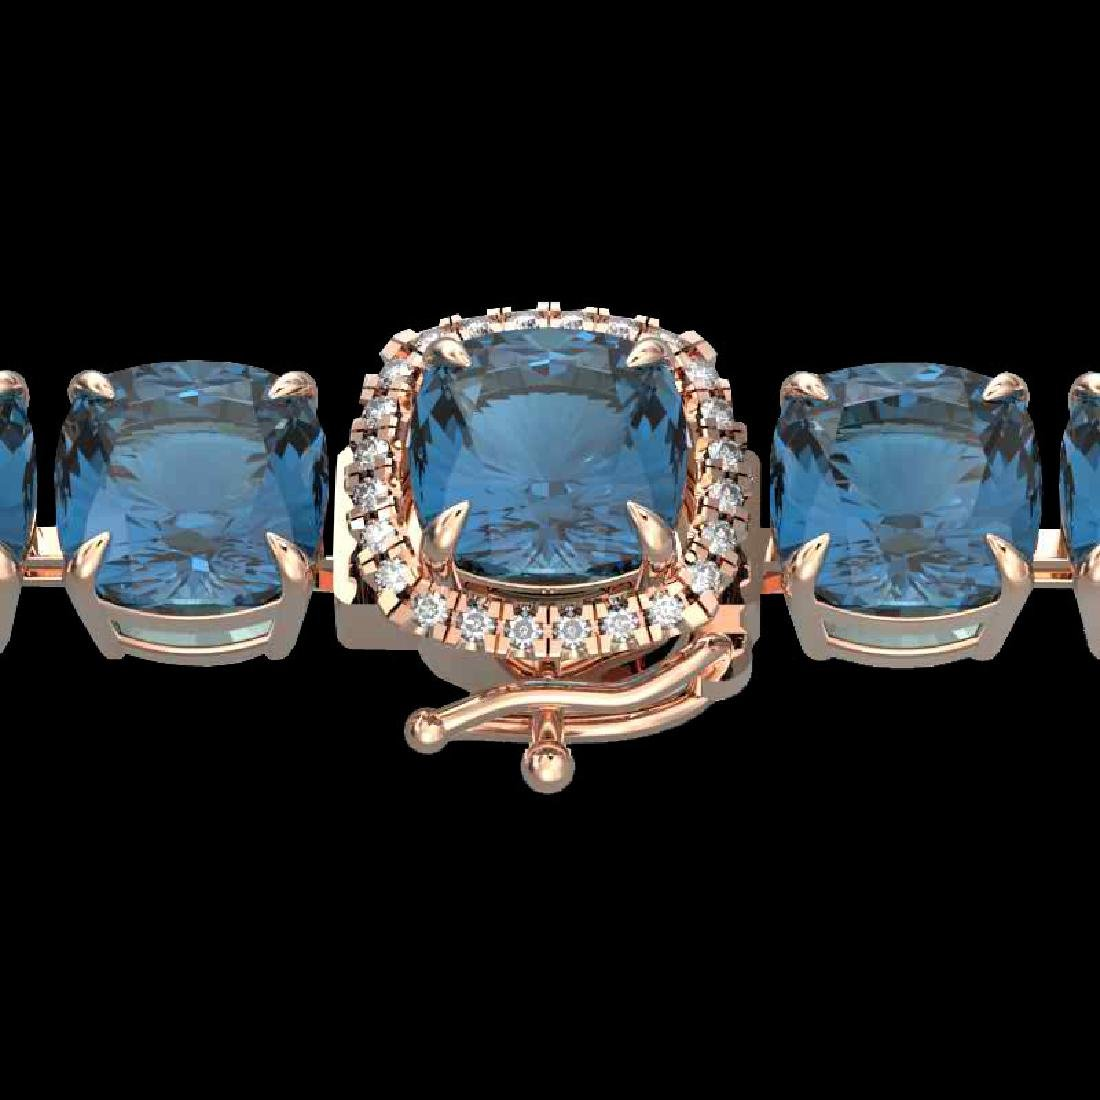 35 CTW London Blue Topaz & Micro VS/SI Diamond Halo